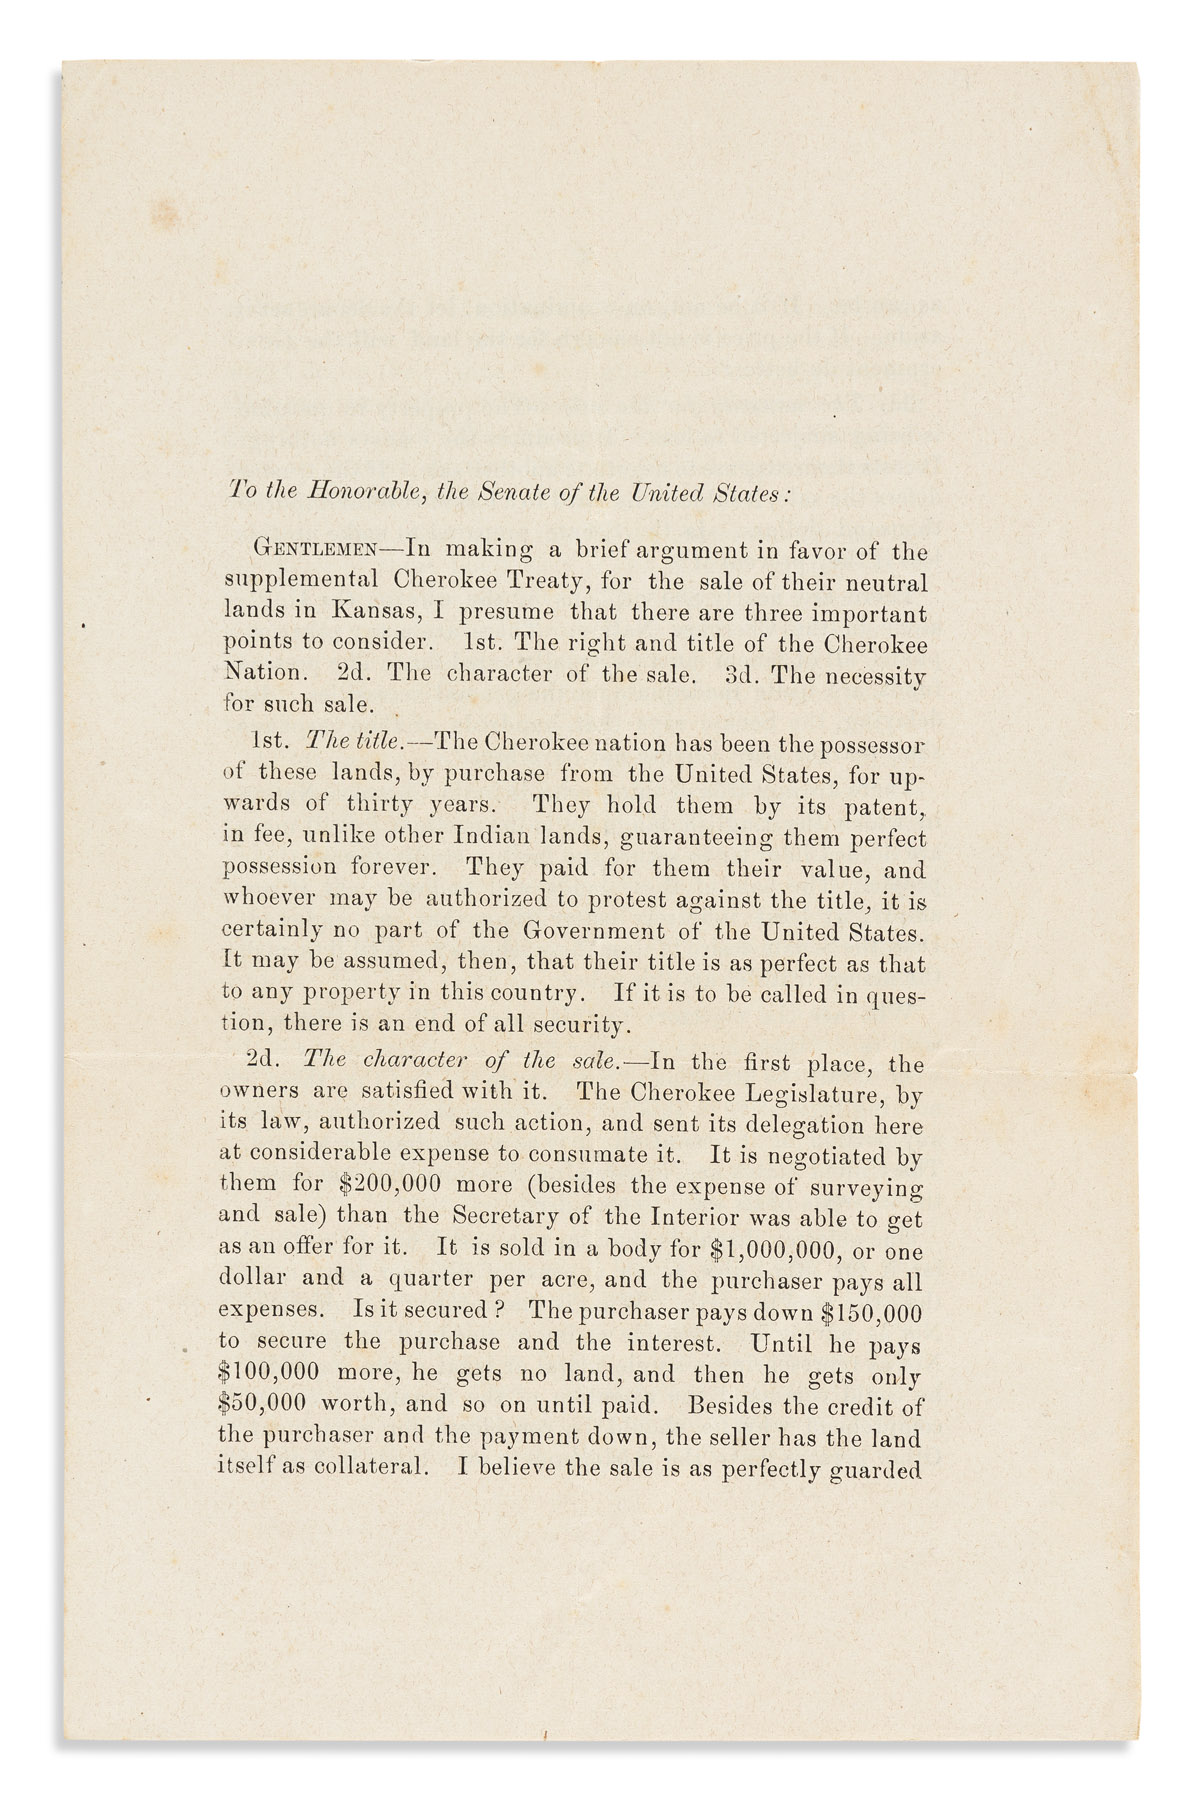 (AMERICAN INDIANS.) William A. Phillips. Defense of the Cherokee Nations right to sell land in Kansas.